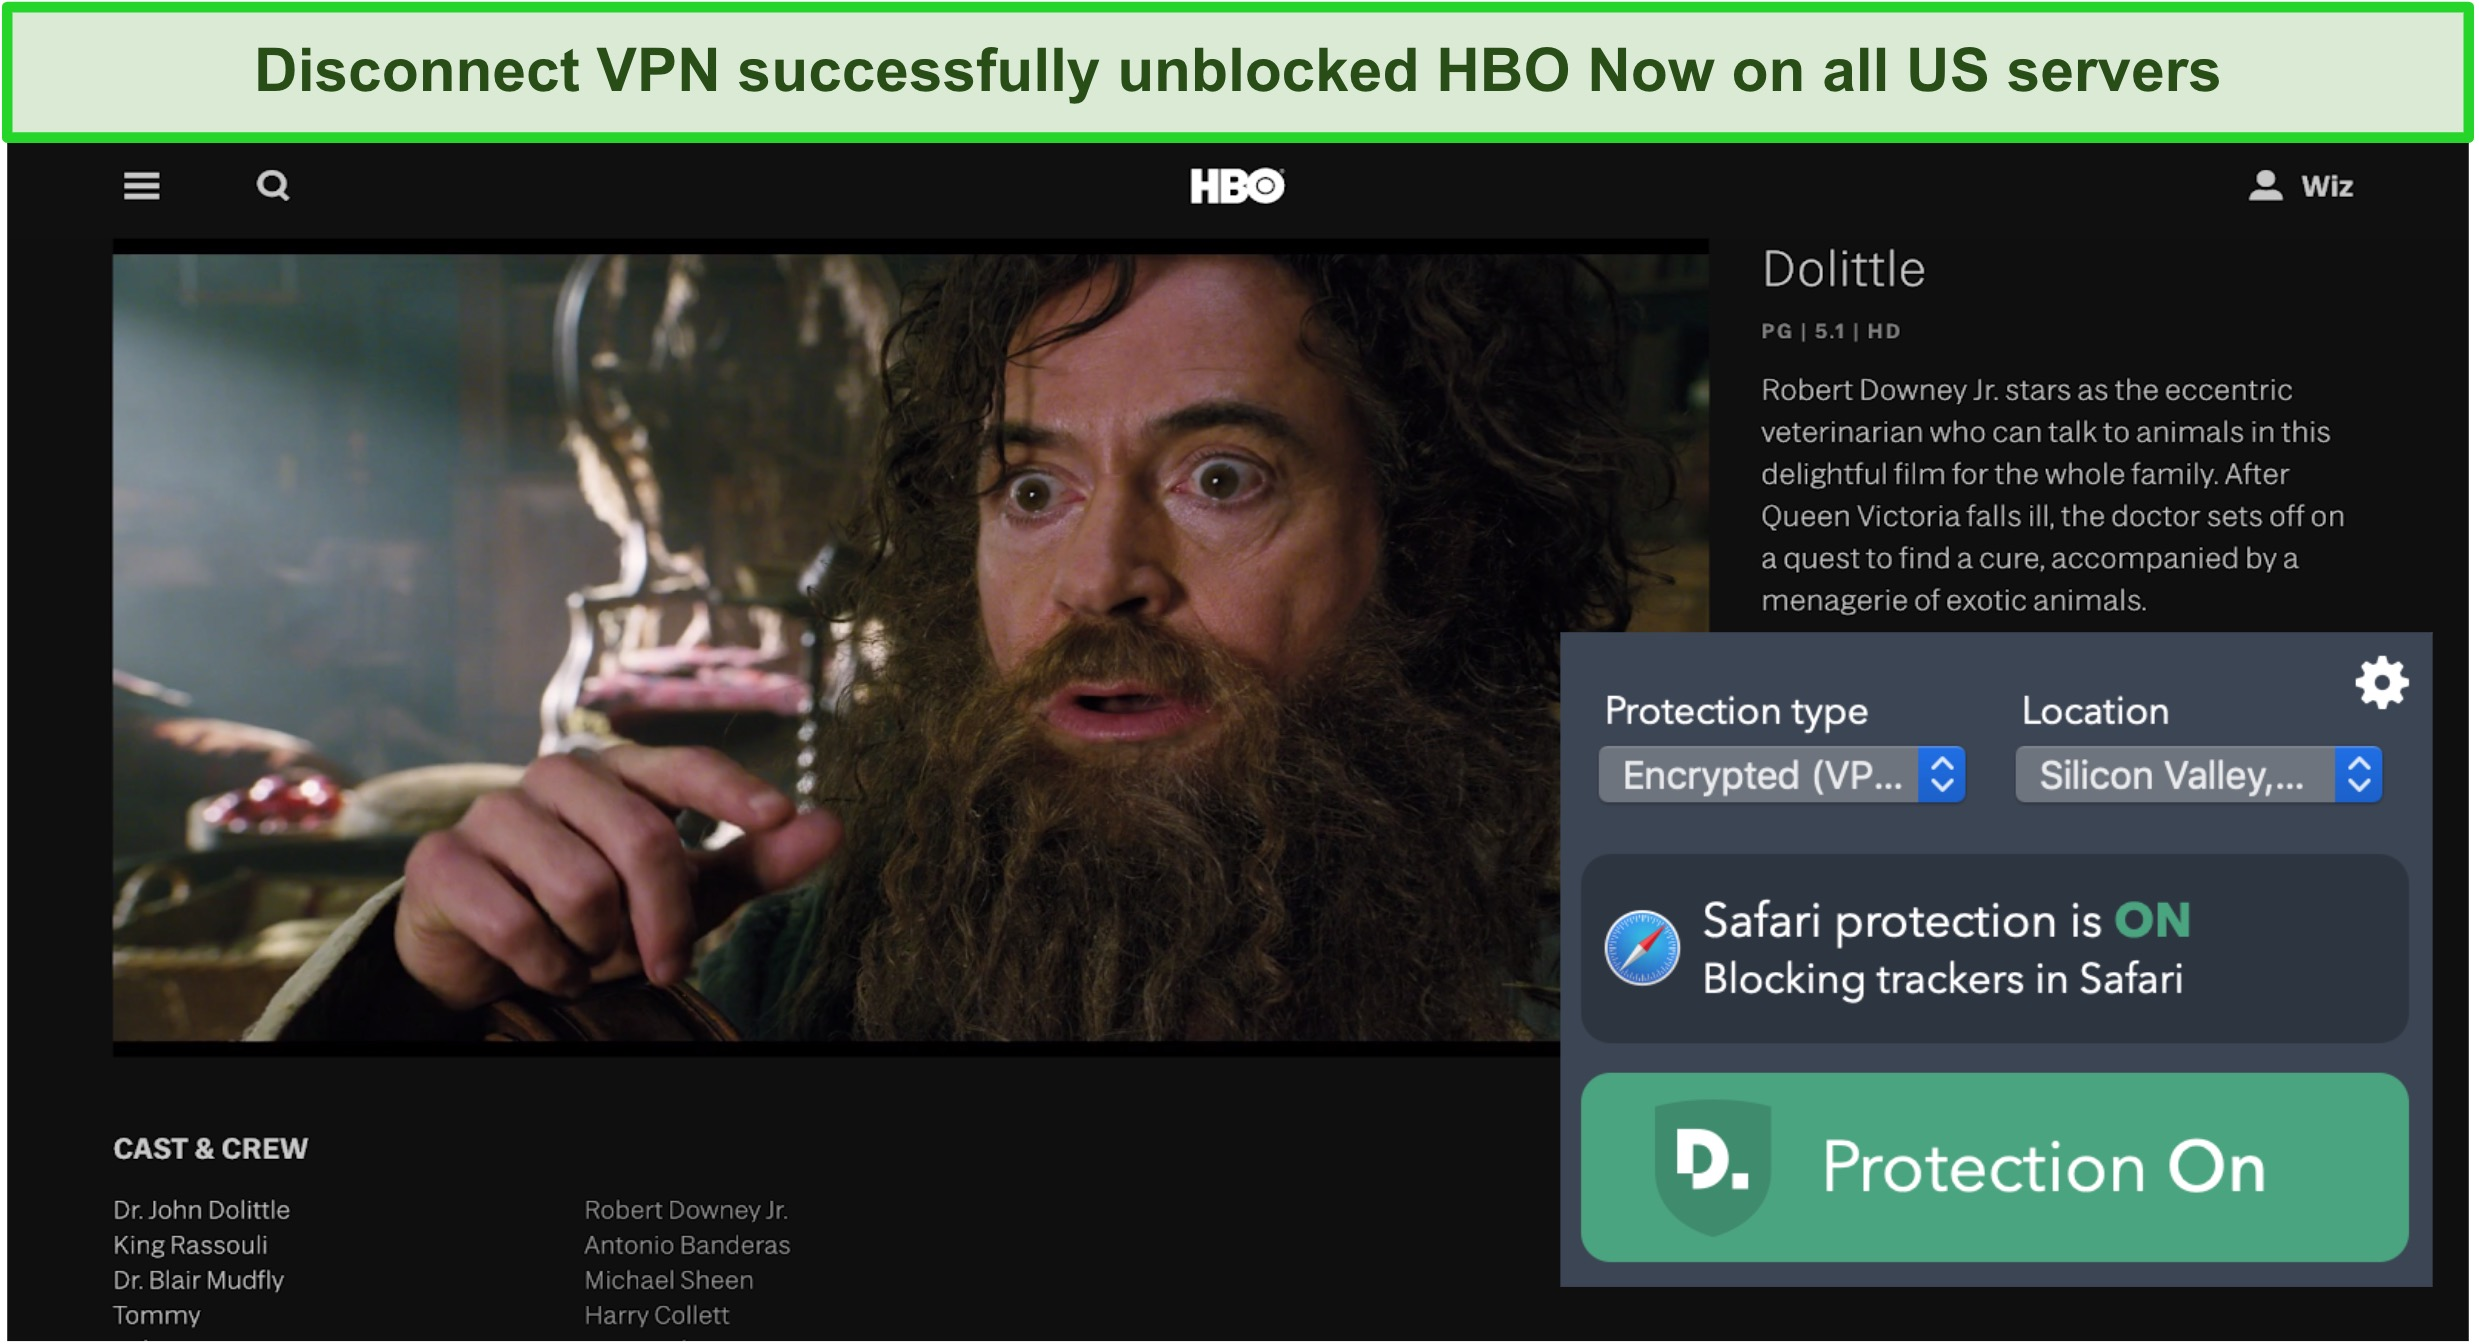 Screenshot of Disconnect VPN unblocking HBO Now